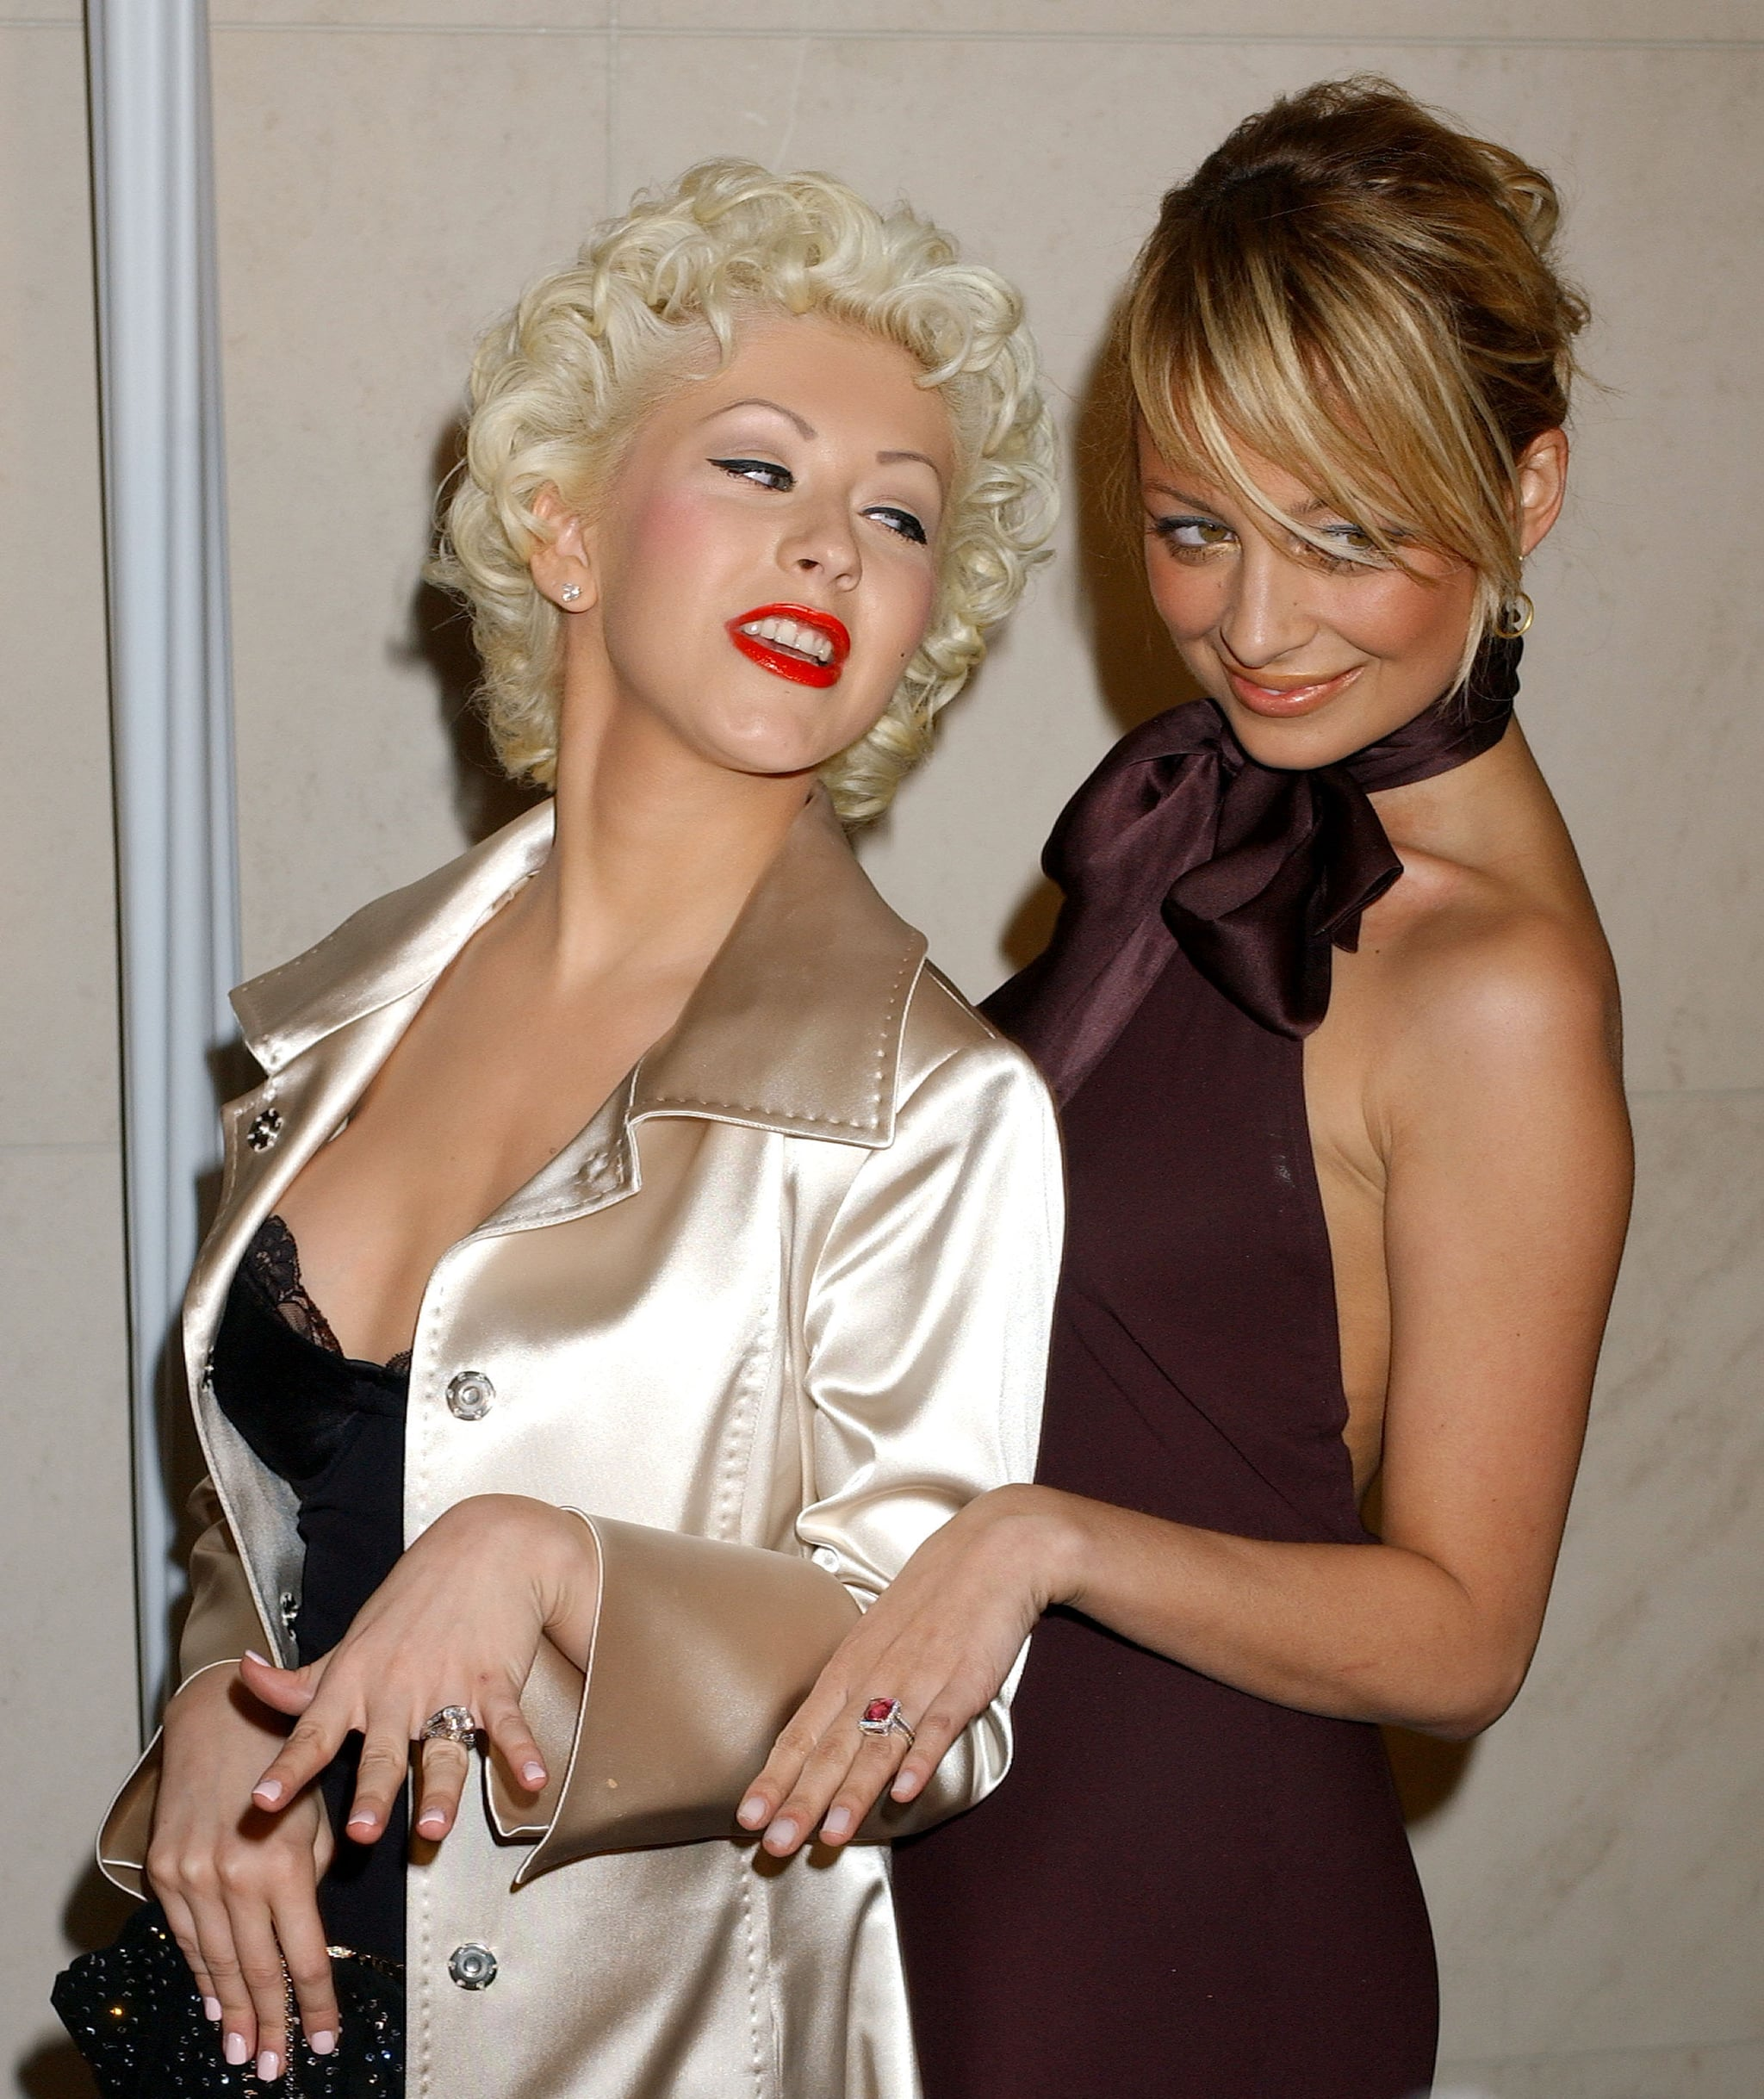 Nicole and Christina Aguilera showed off their shiny new engagement rings — courtesy of DJ AM and Jordan Bratman, respectively — at a Roberto Cavalli store opening in LA in February 2005.